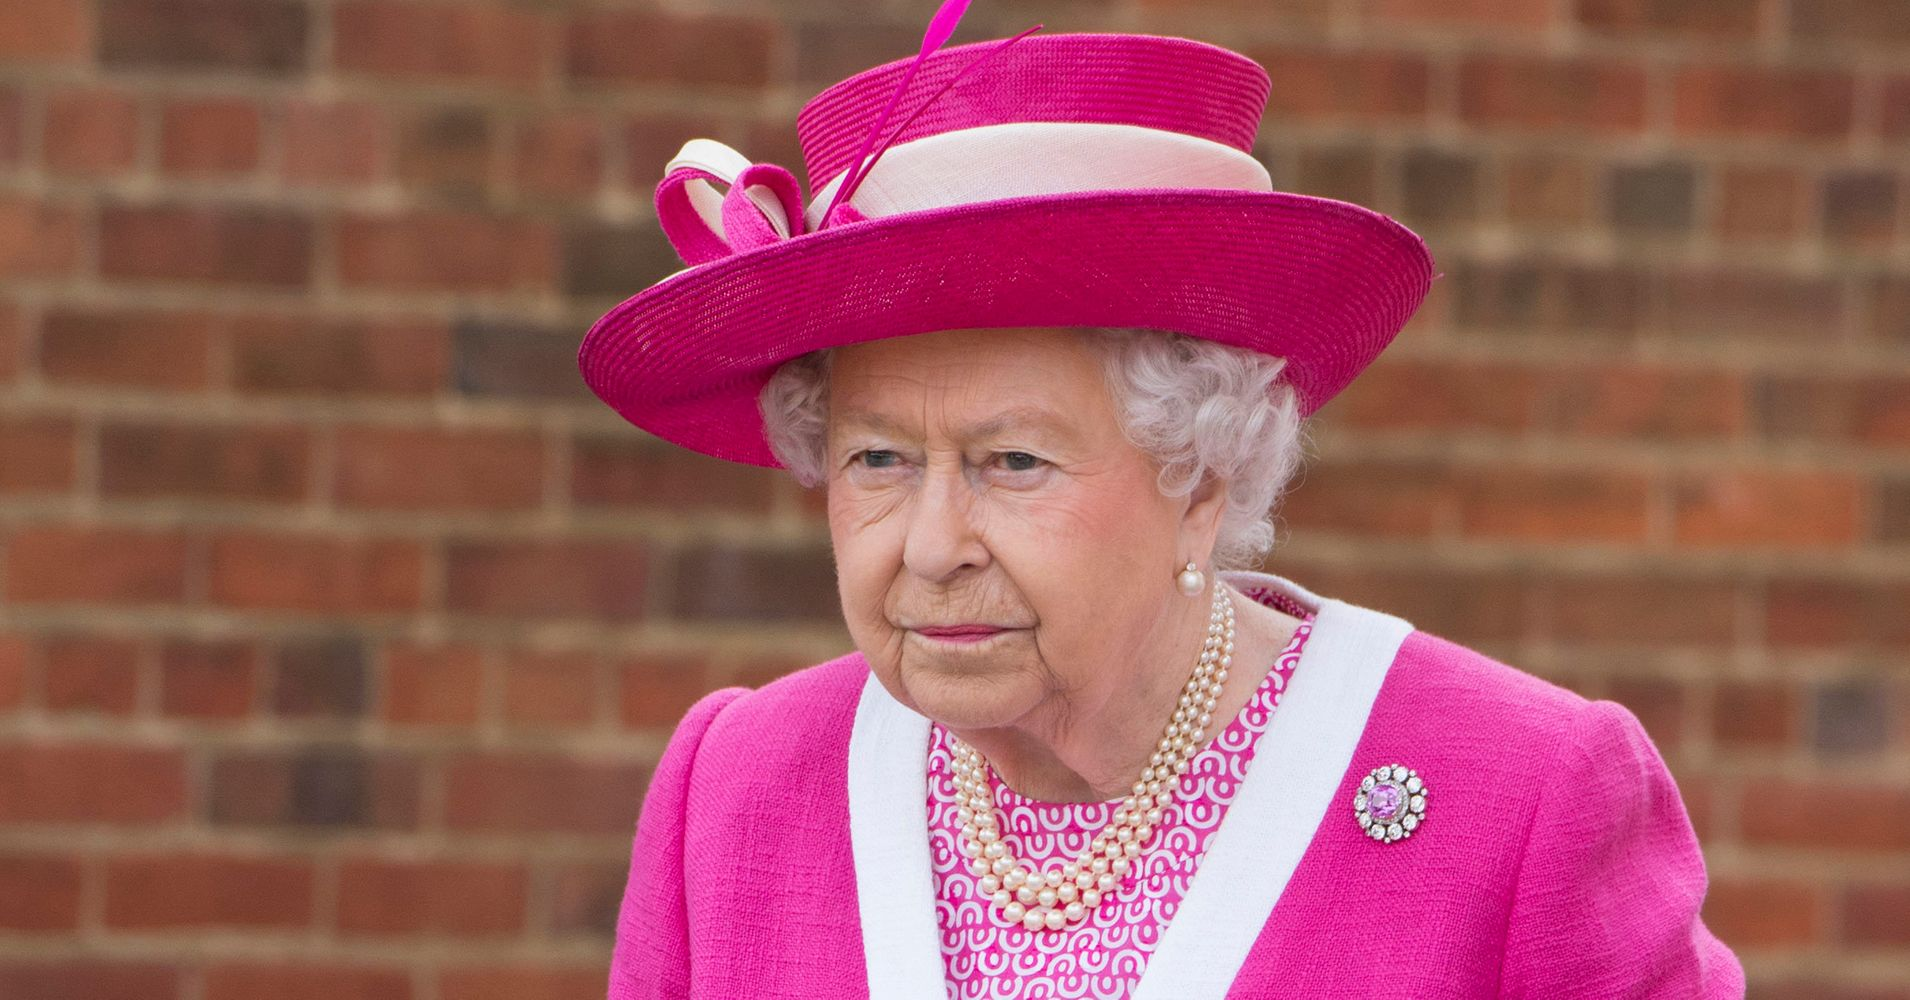 446ad4e09ac9a British Queen And Prime Minister s Hot Mic Gaffes Are Undiplomatic But  Revealing